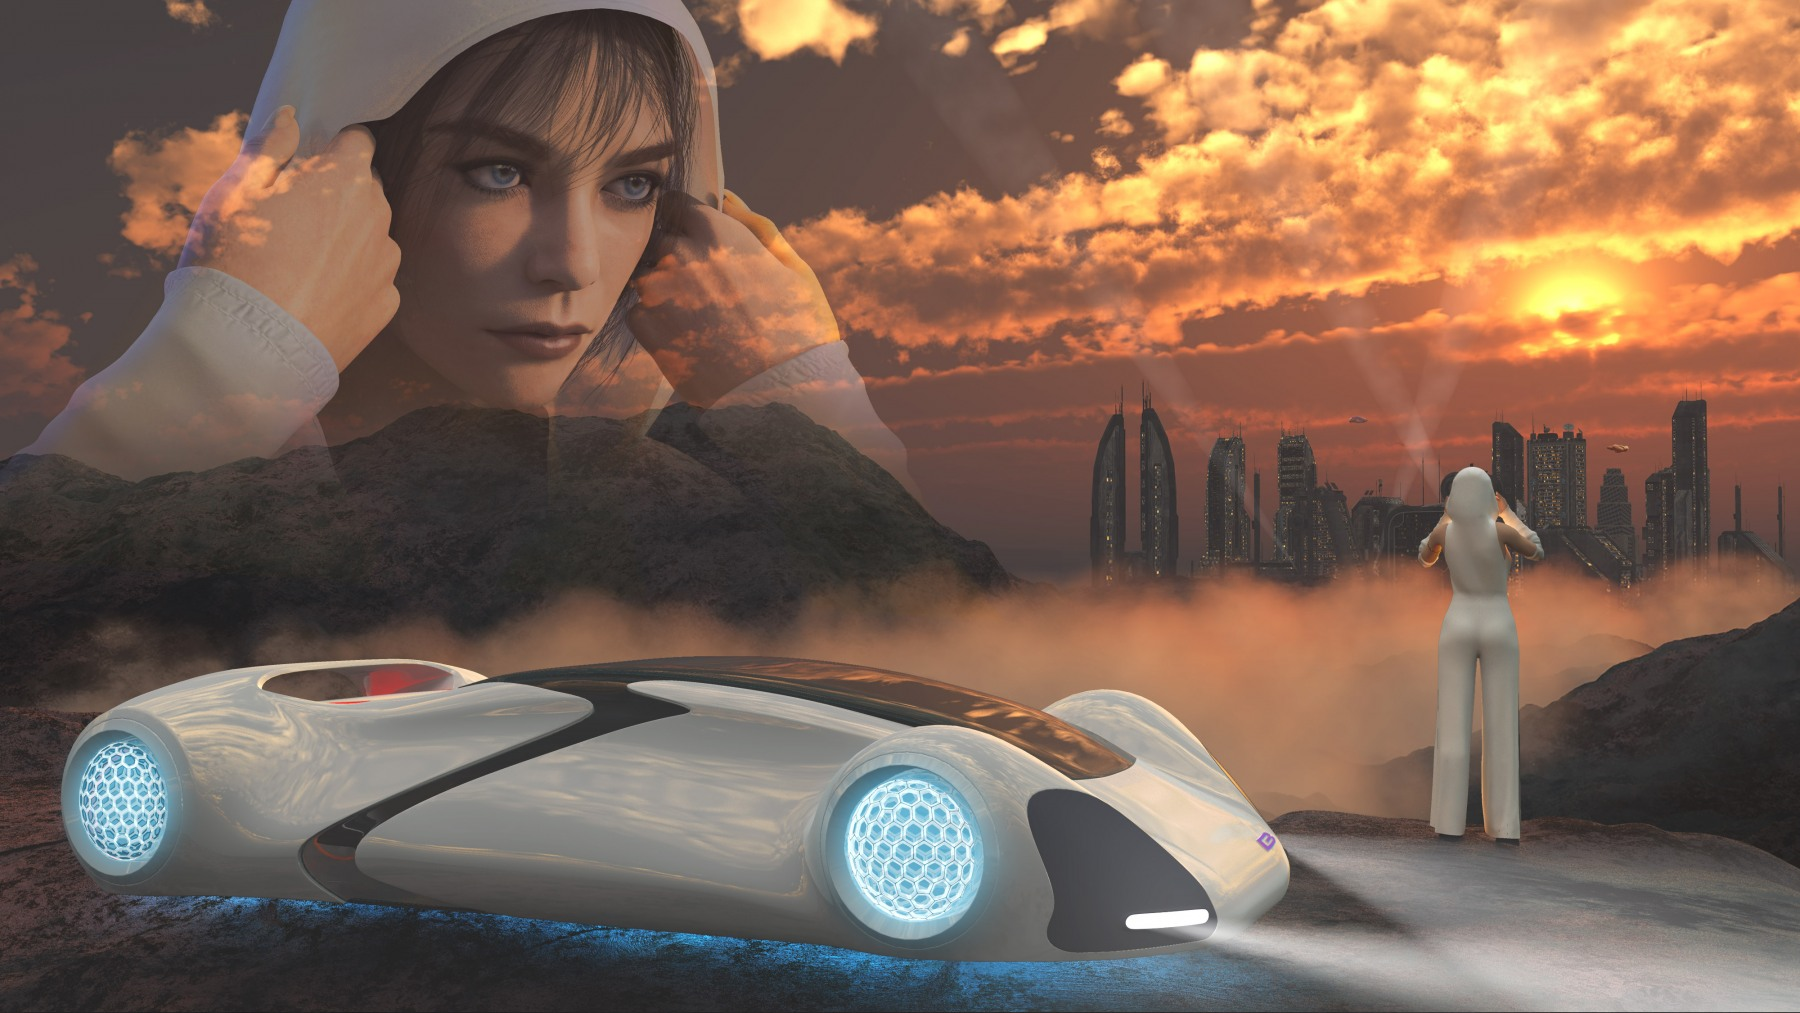 FUTURE CITY AND HOVER CAR